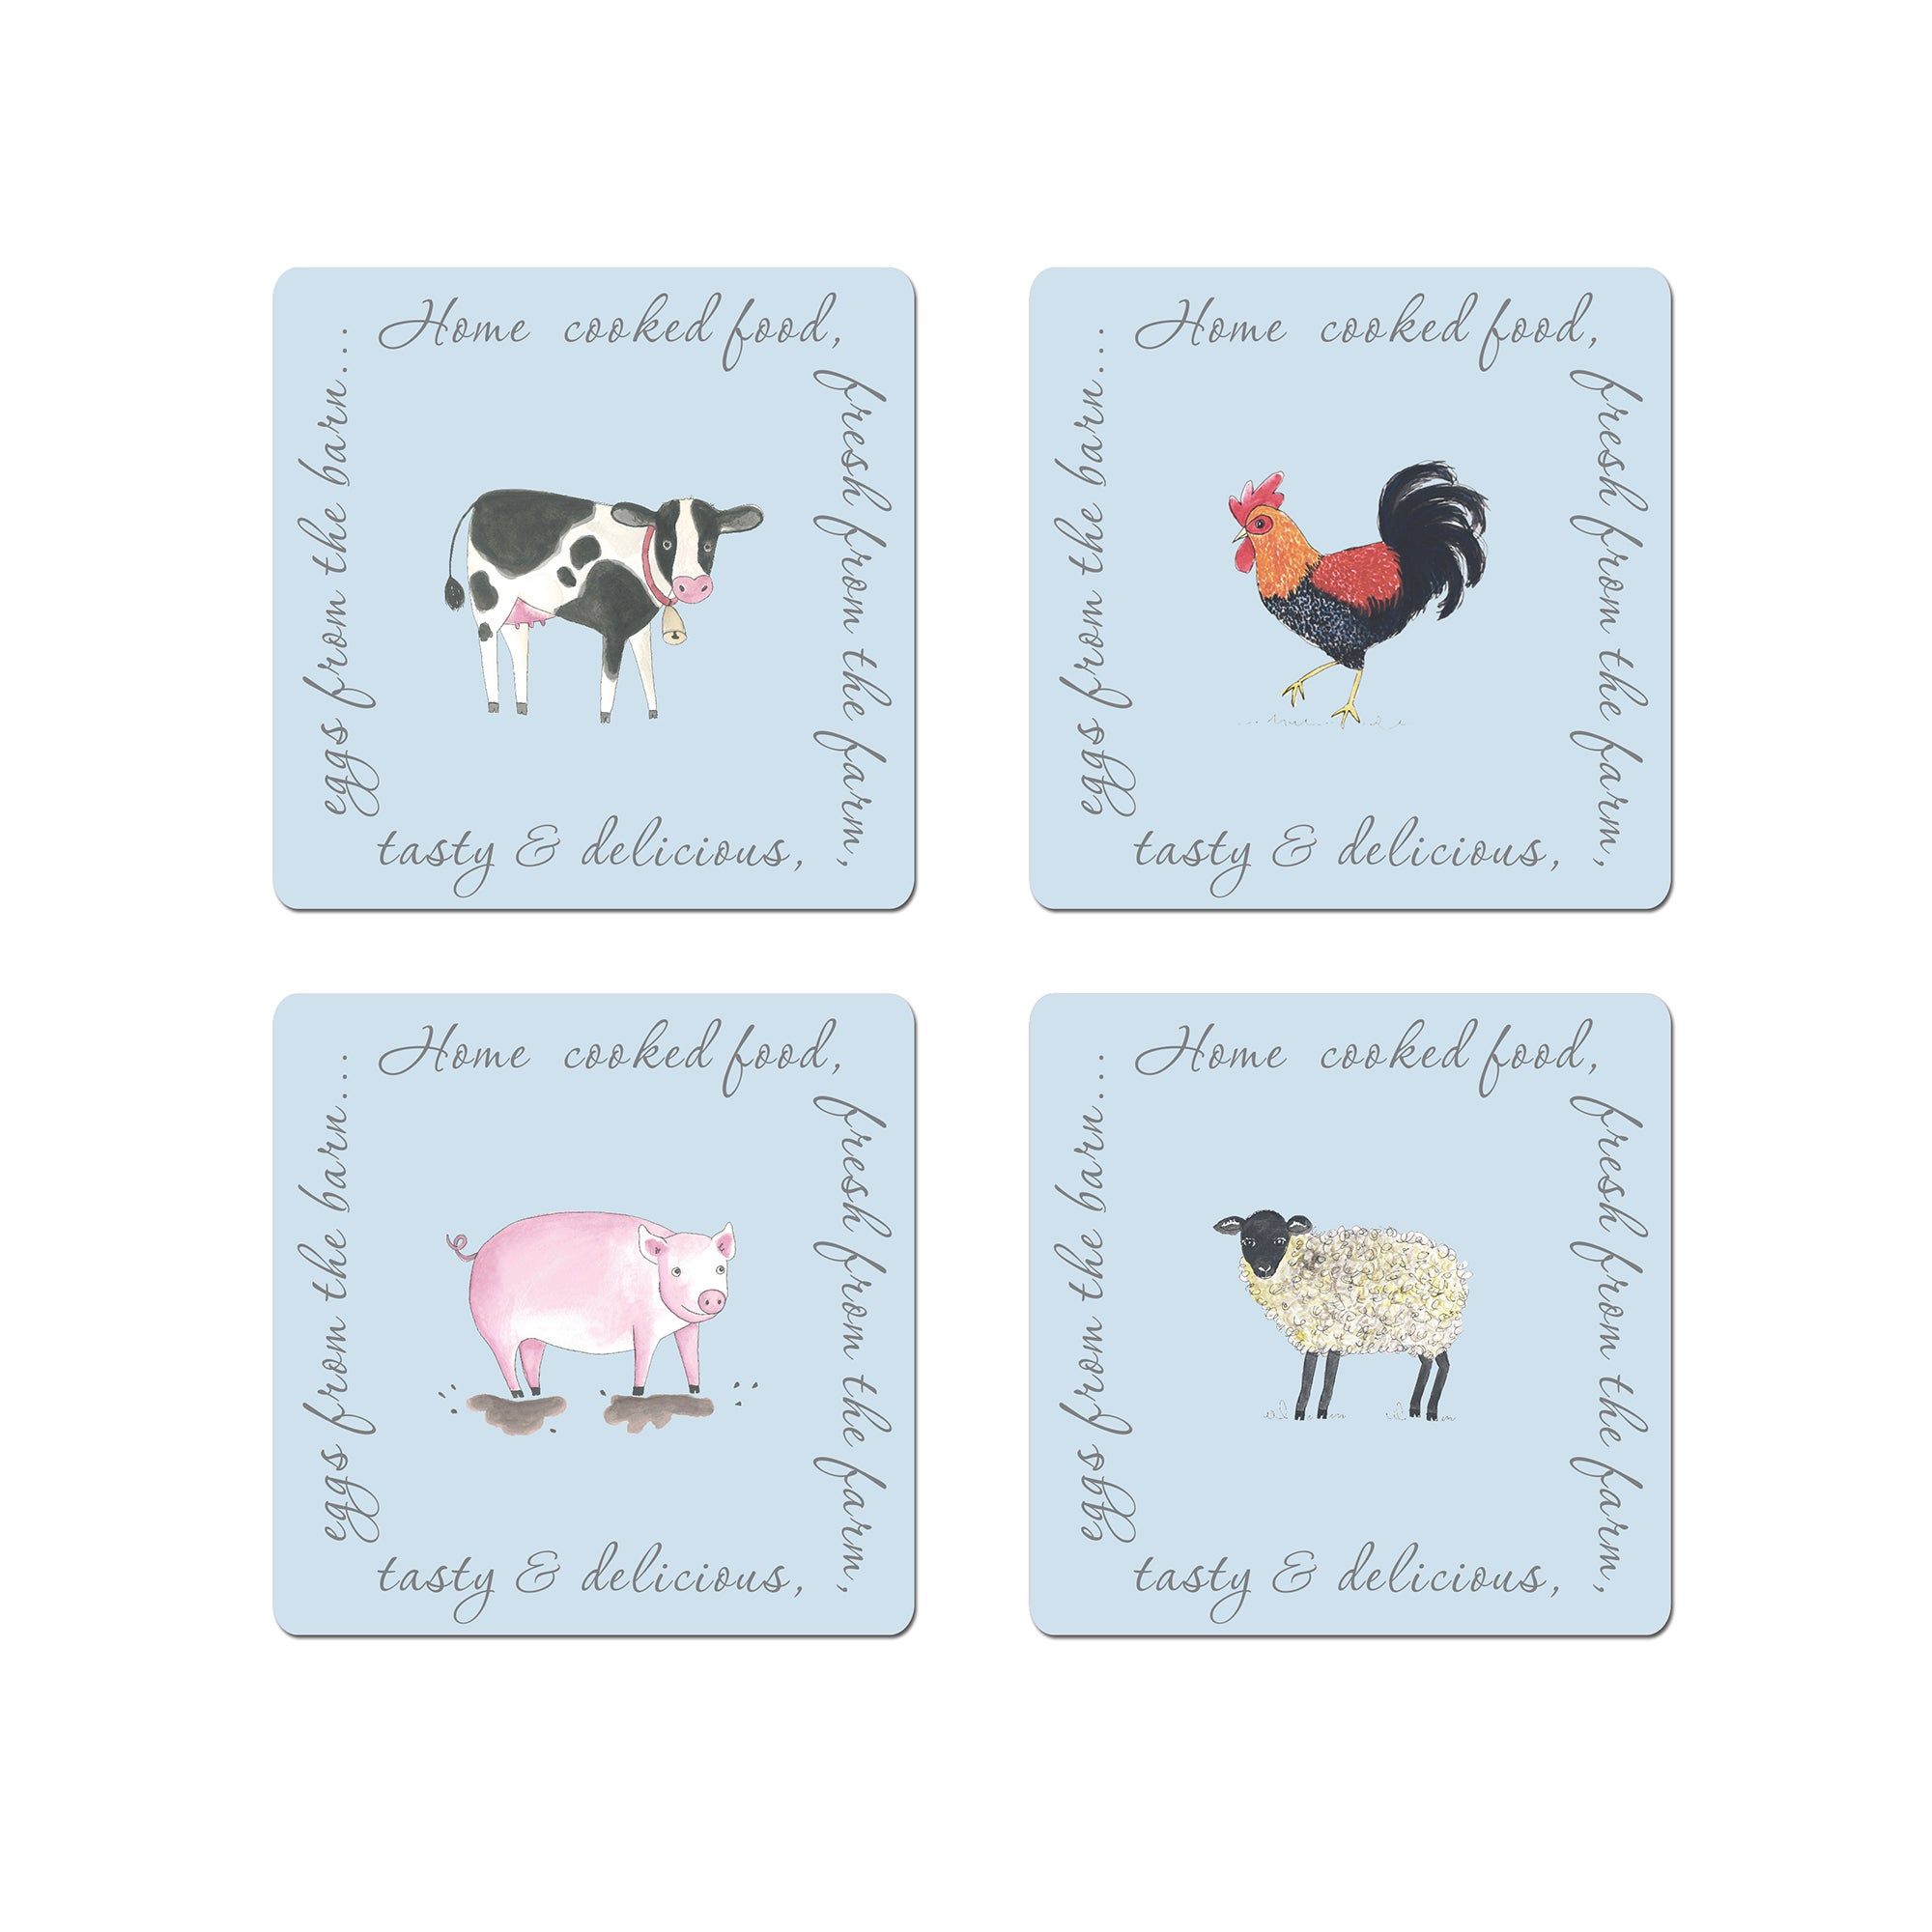 Bakewell Farm Dinnerware Collection